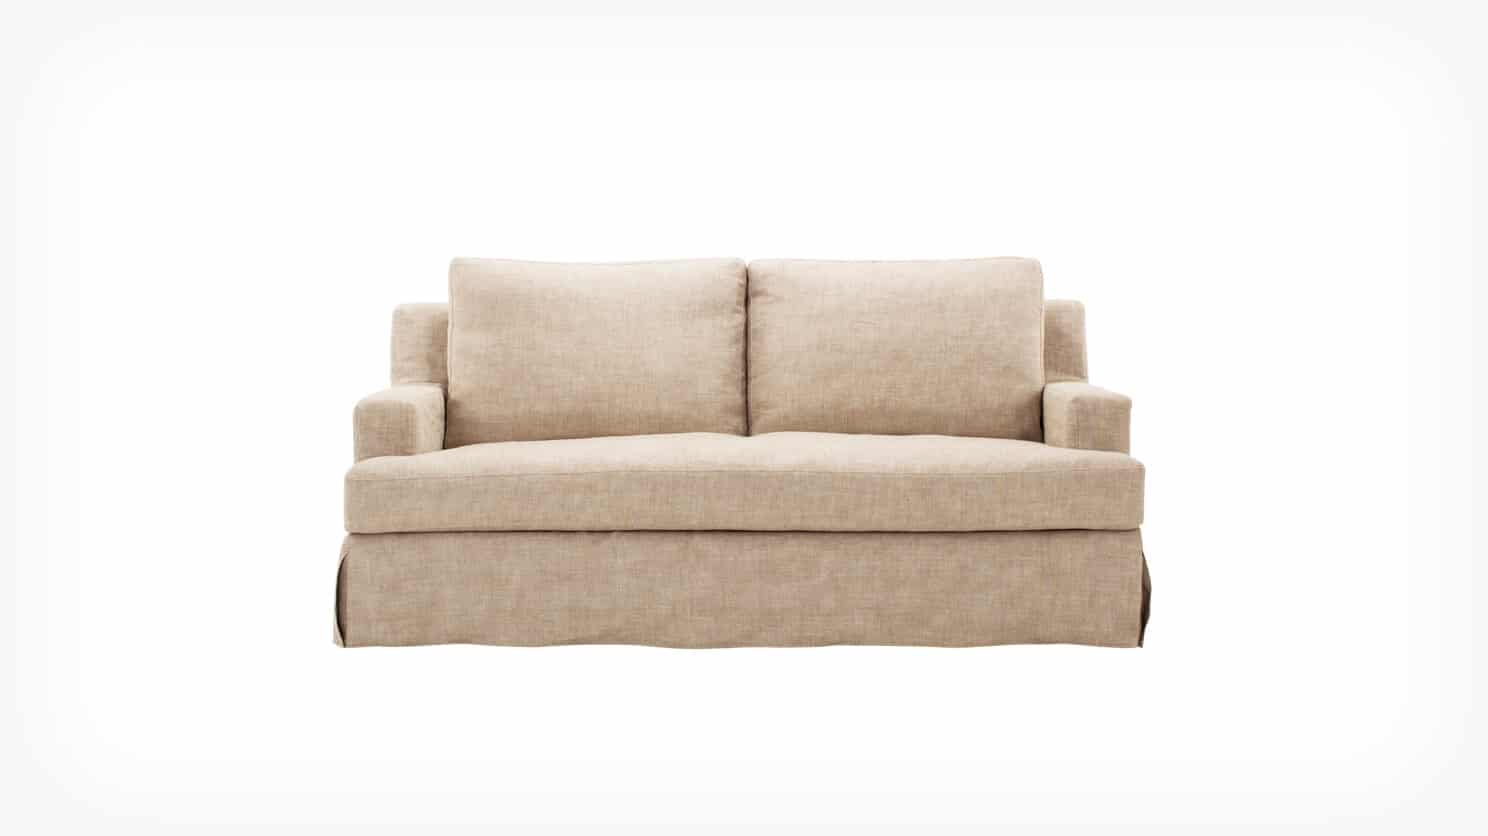 32113 03 01 loveseat slipcover blanche front view